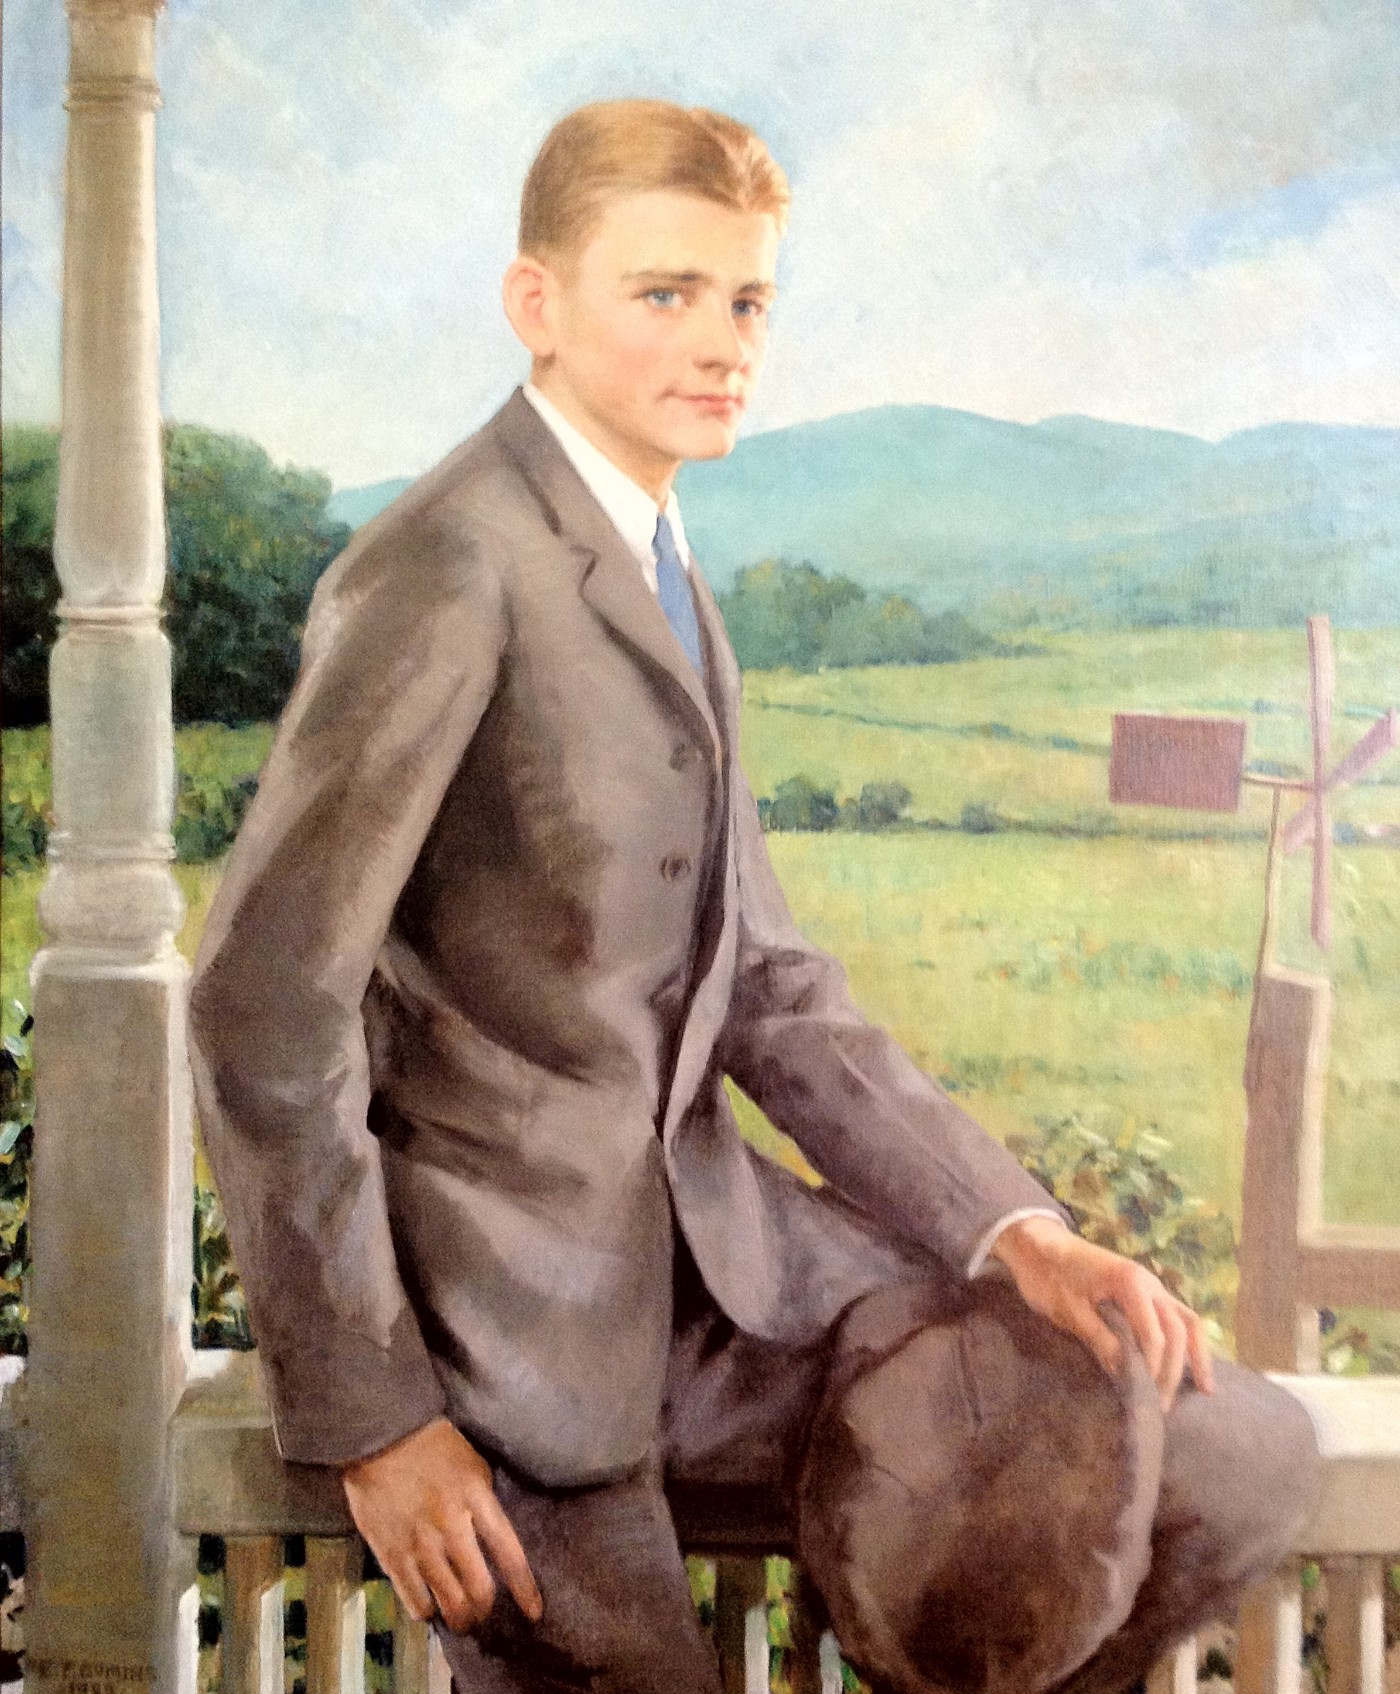 A painting of a U.S. president on his ranch